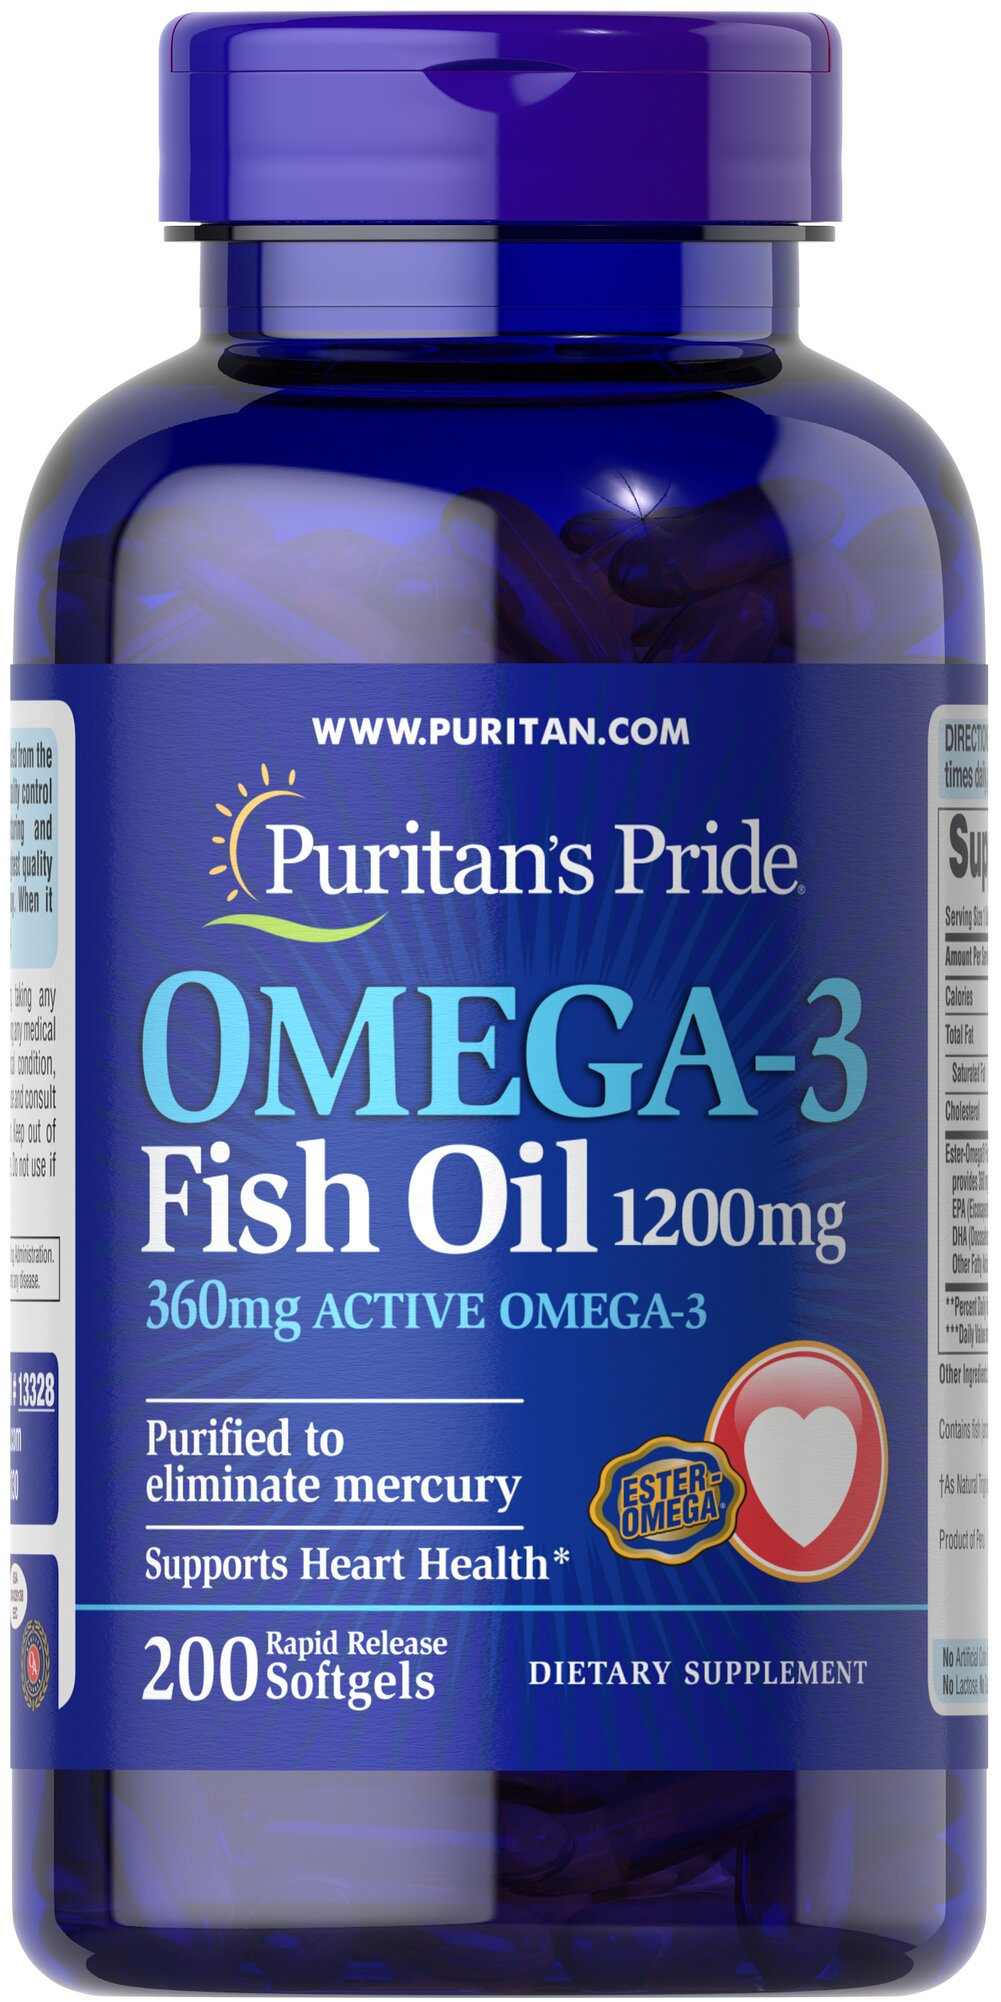 Omega-3 Fish Oil 1200 mg (360 mg Active Omega-3)  200 Softgels 1200 mg $21.59